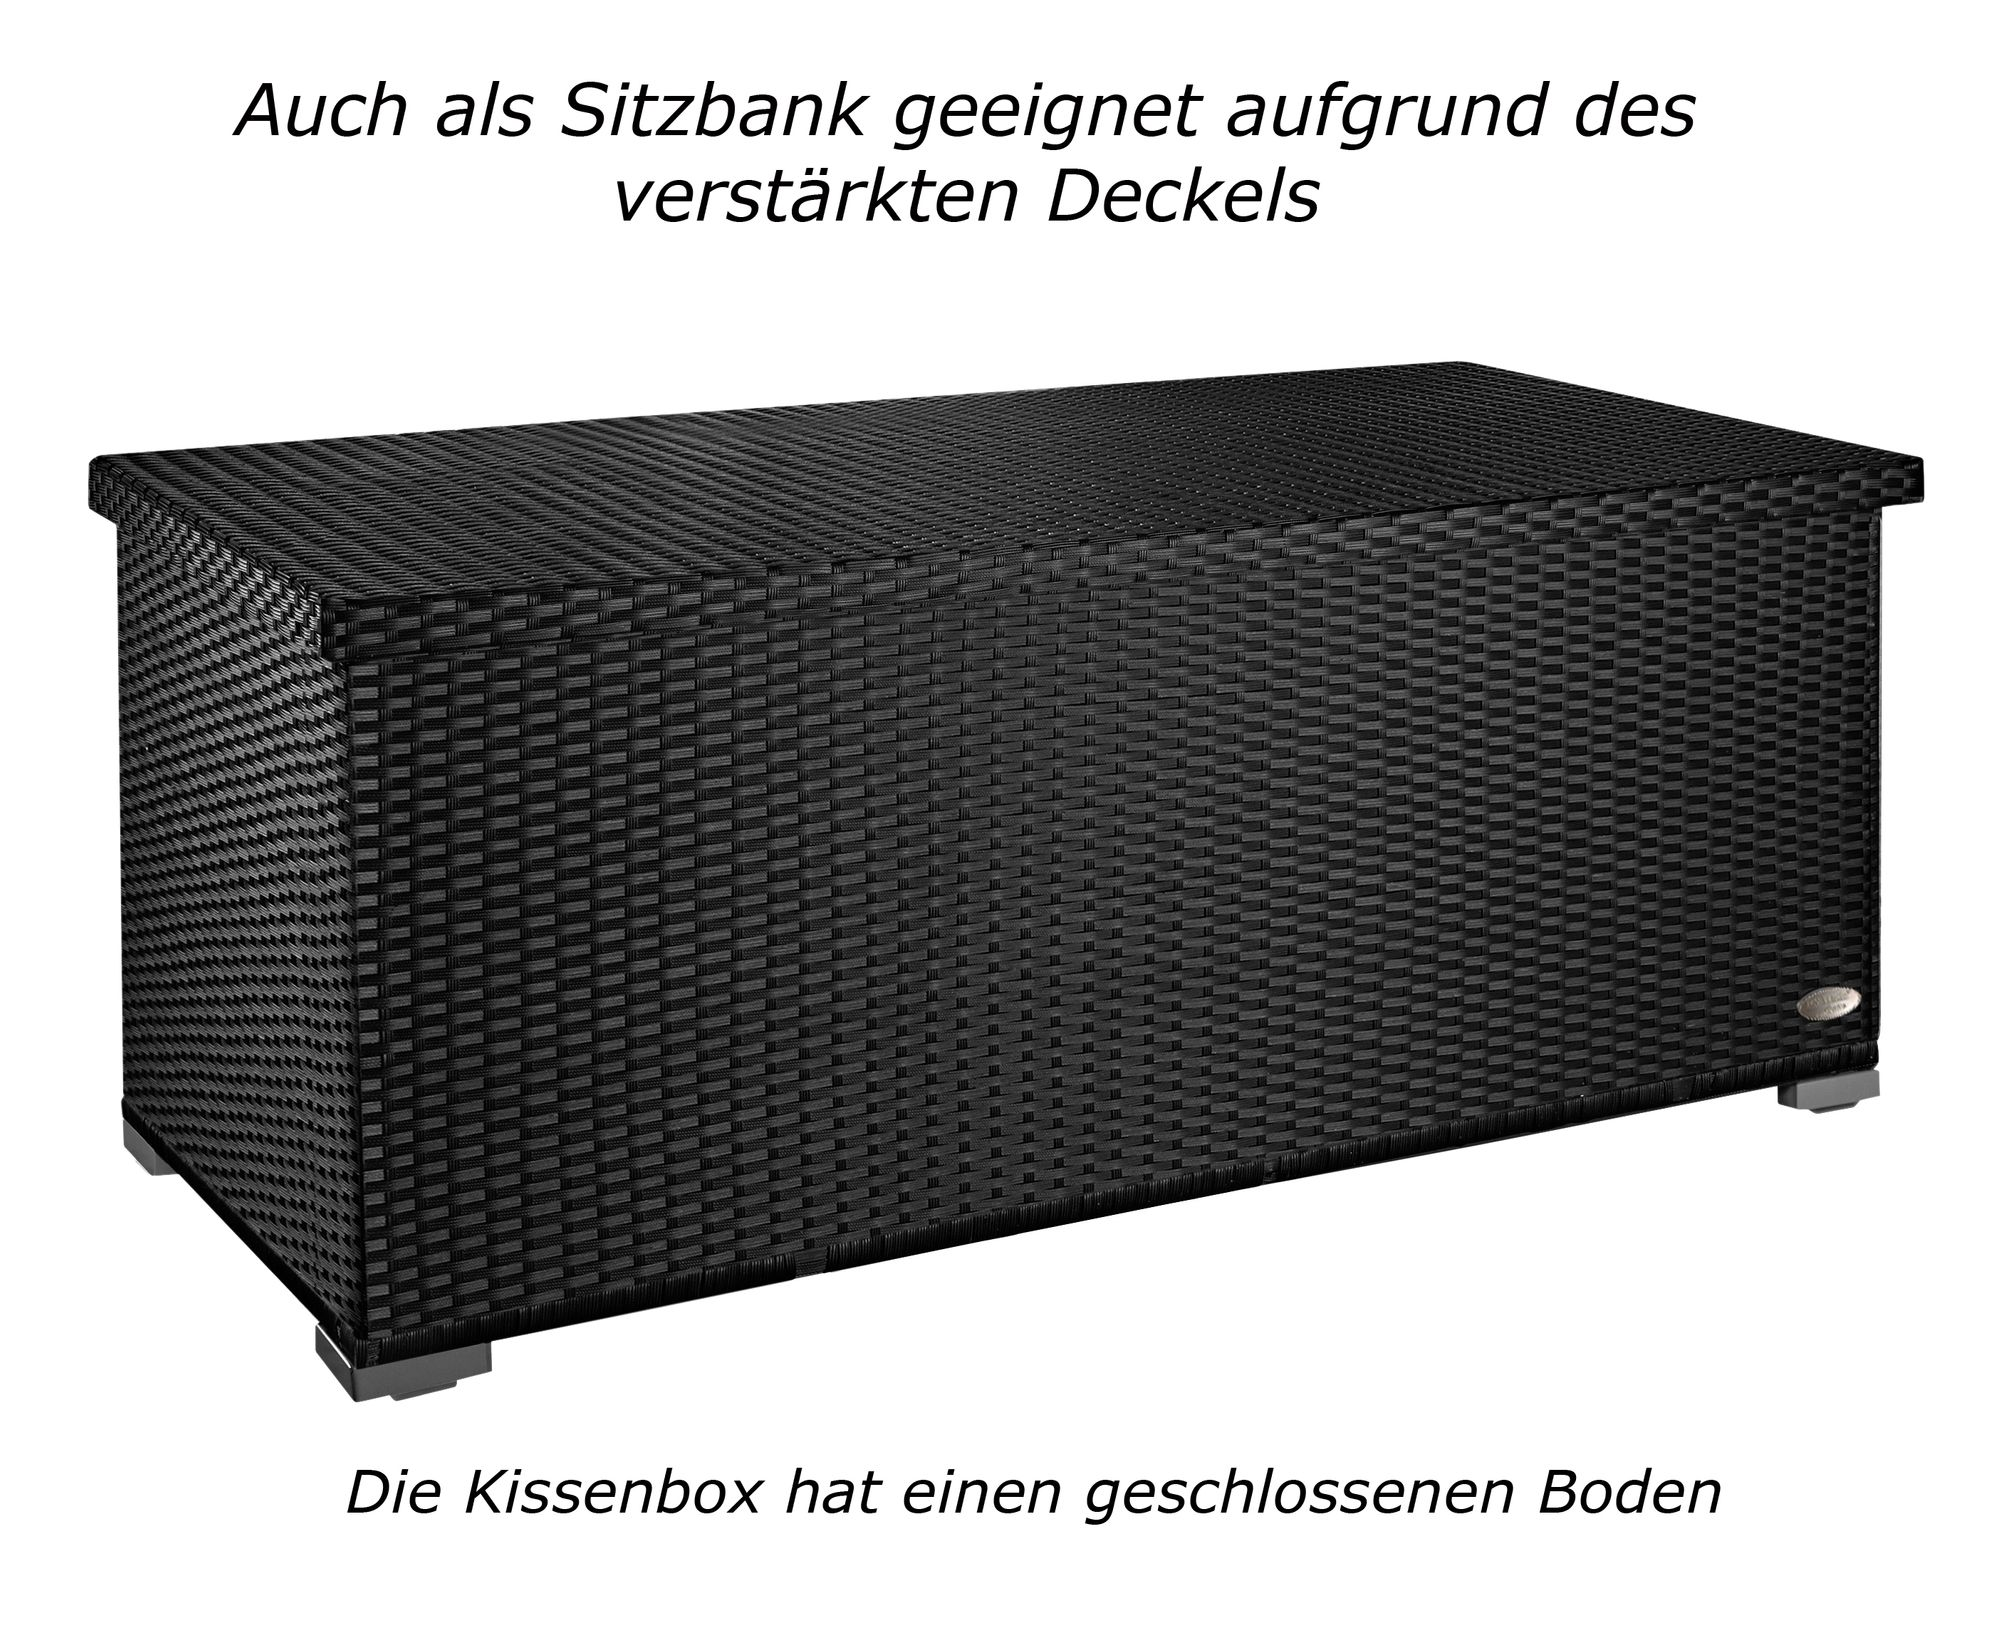 kissenbox xxl wasserdicht elegant elegant xxl rattanmbel. Black Bedroom Furniture Sets. Home Design Ideas